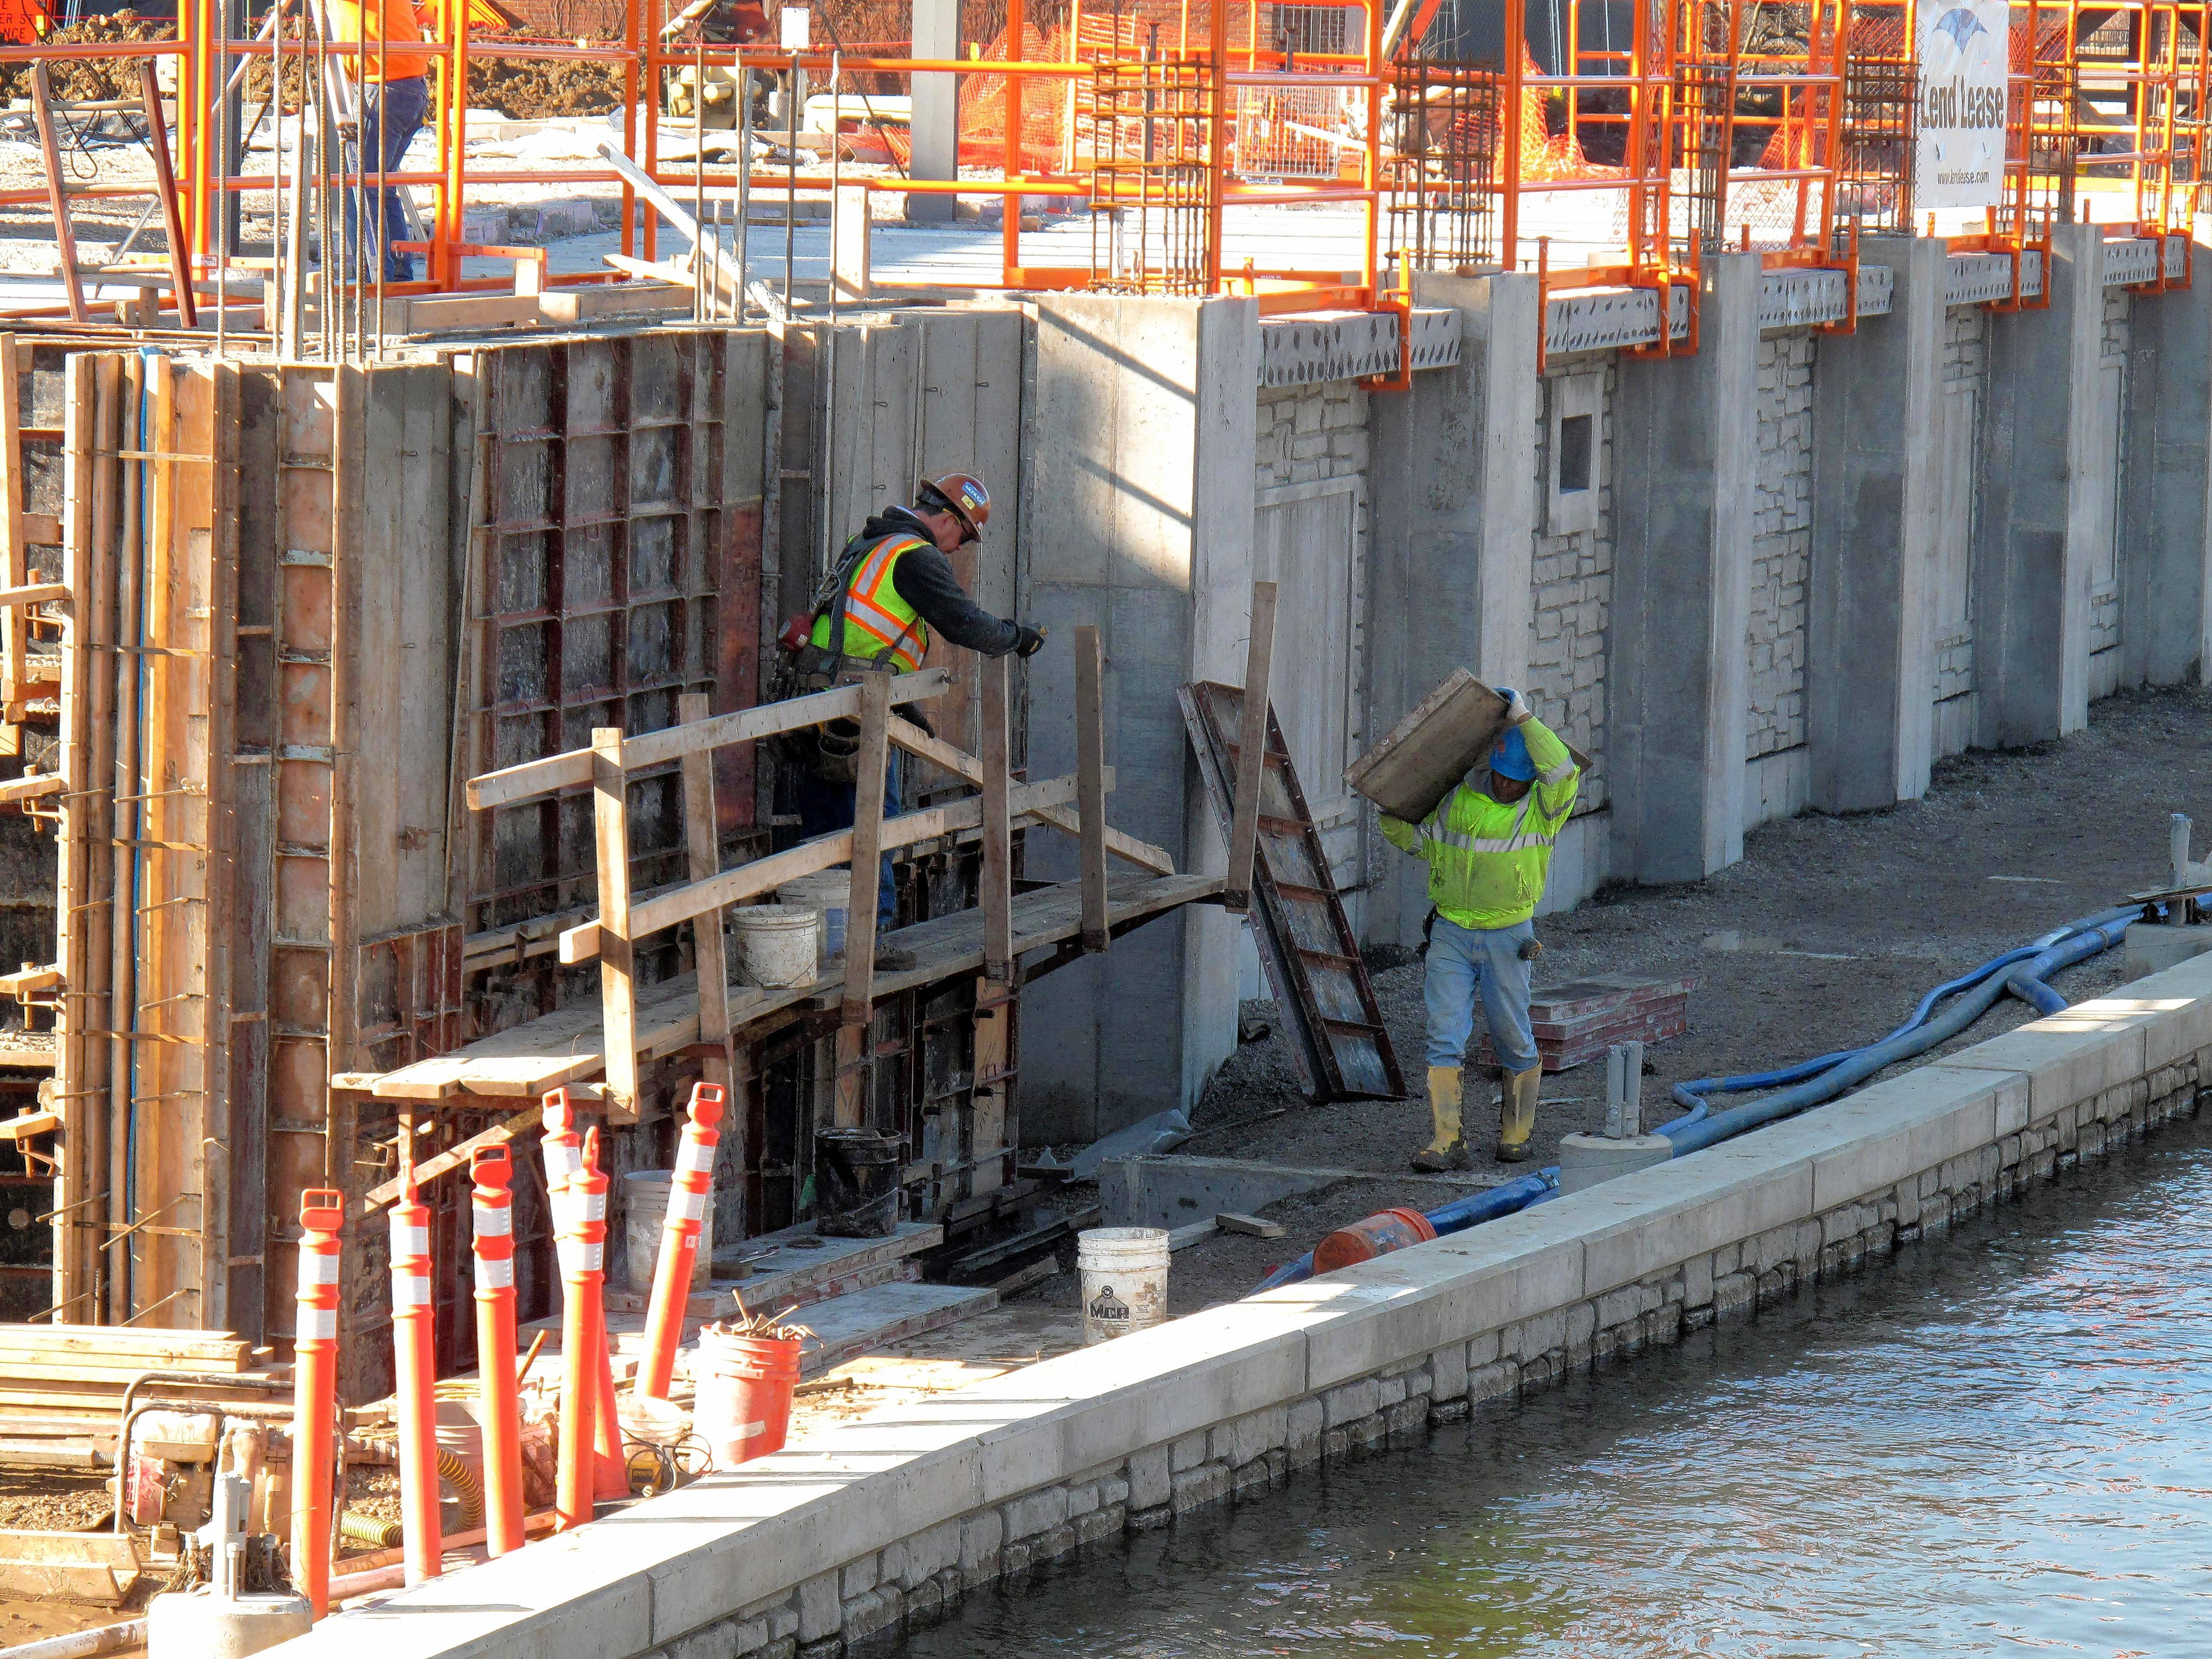 Construction crews work on the boardwalk wall along the Riverwalk at the Water Street District in downtown Naperville.